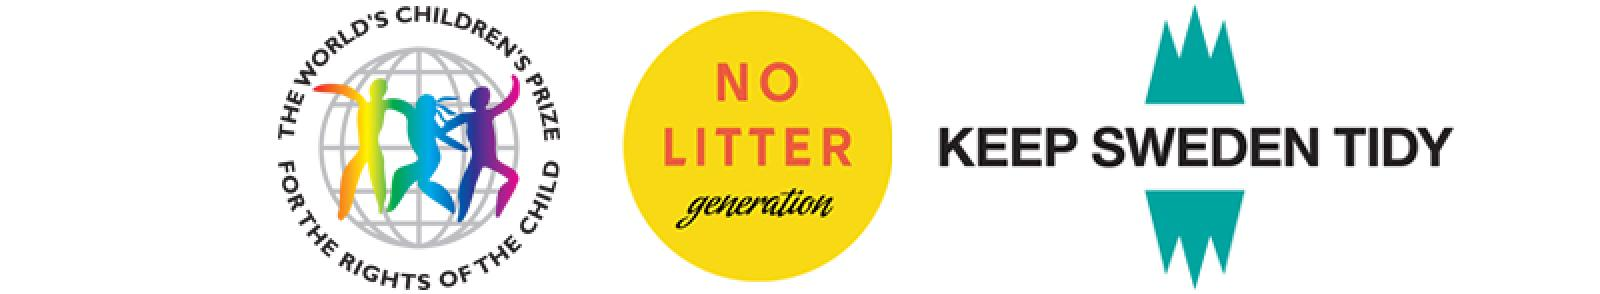 No Litter Generation Logos